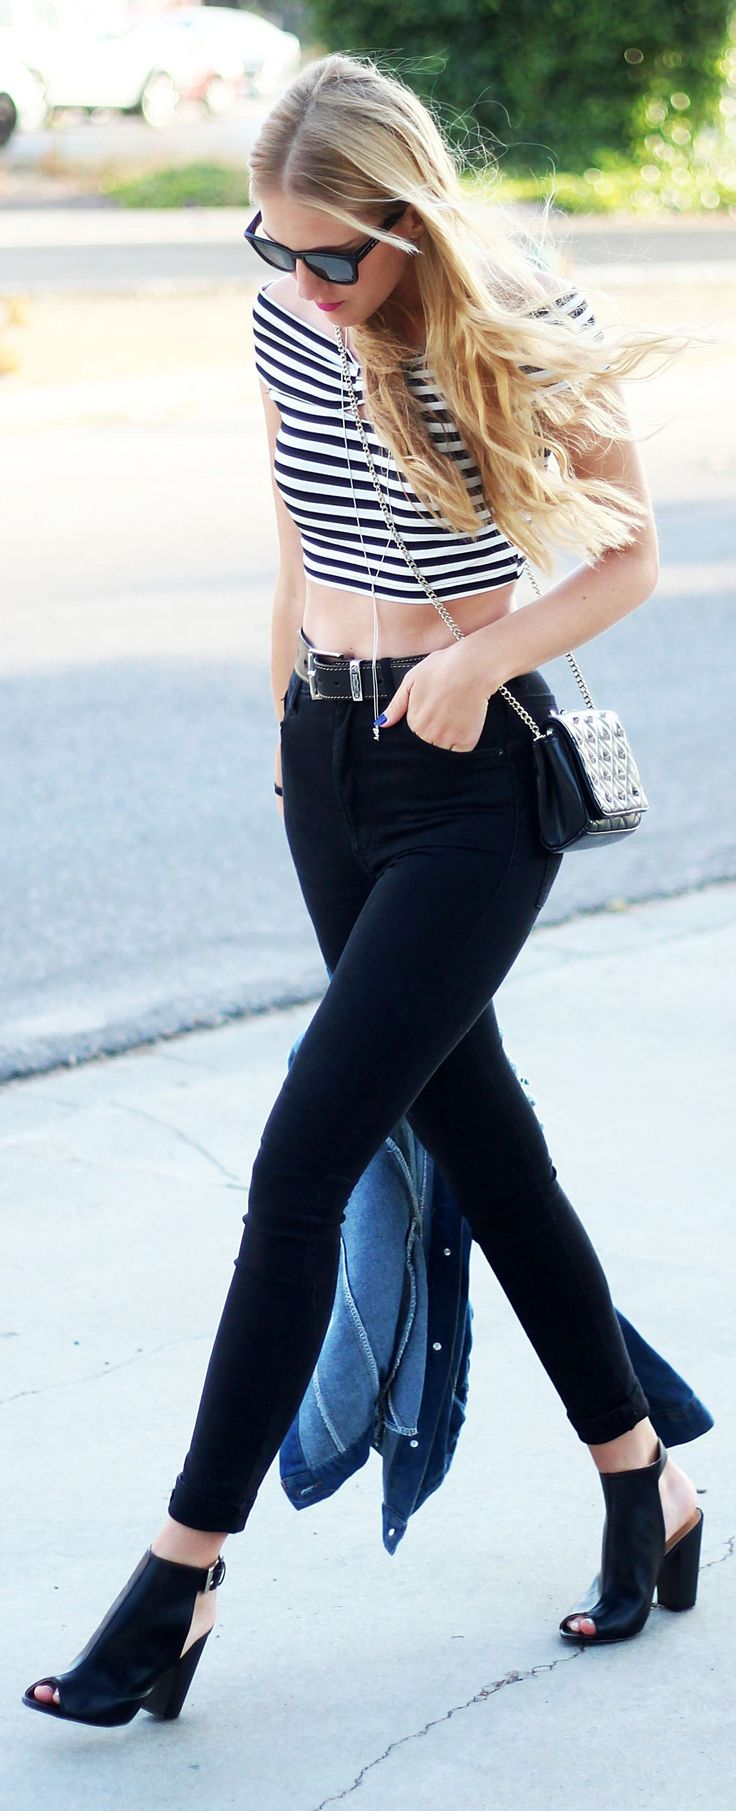 Striped Cropped Top | Top Cropped Listrado